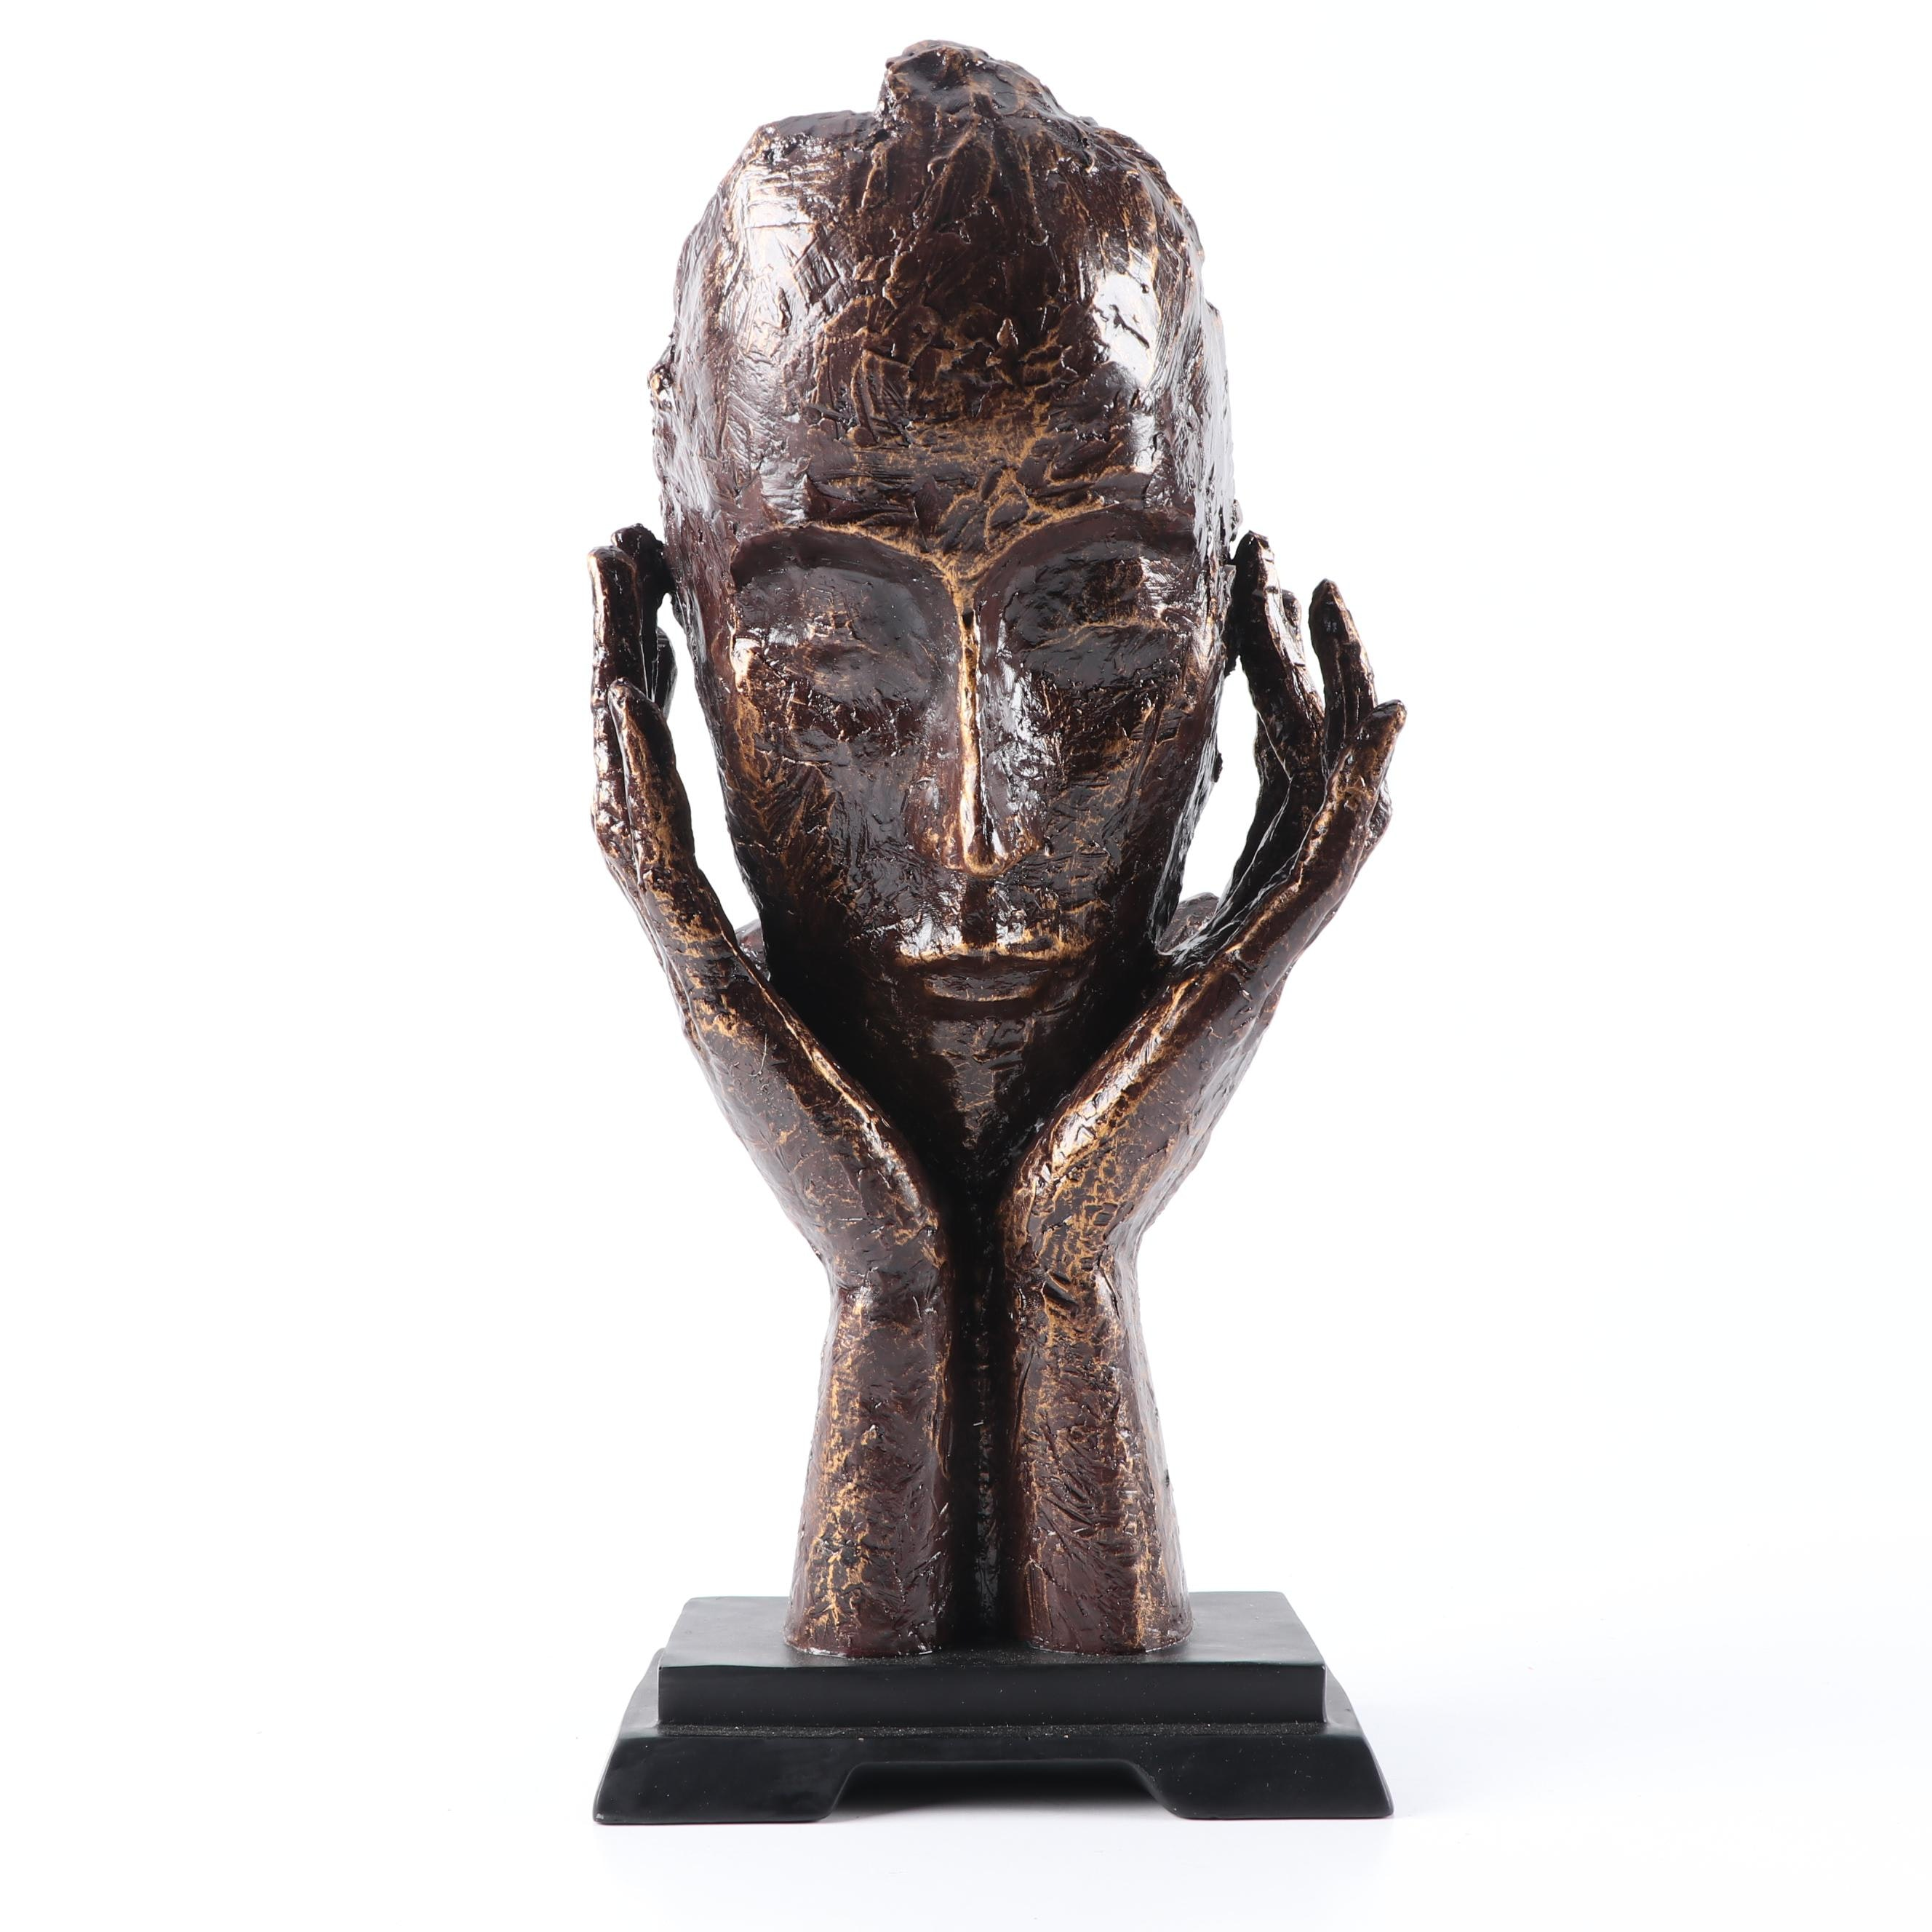 Cast Resin Sculpture of Face